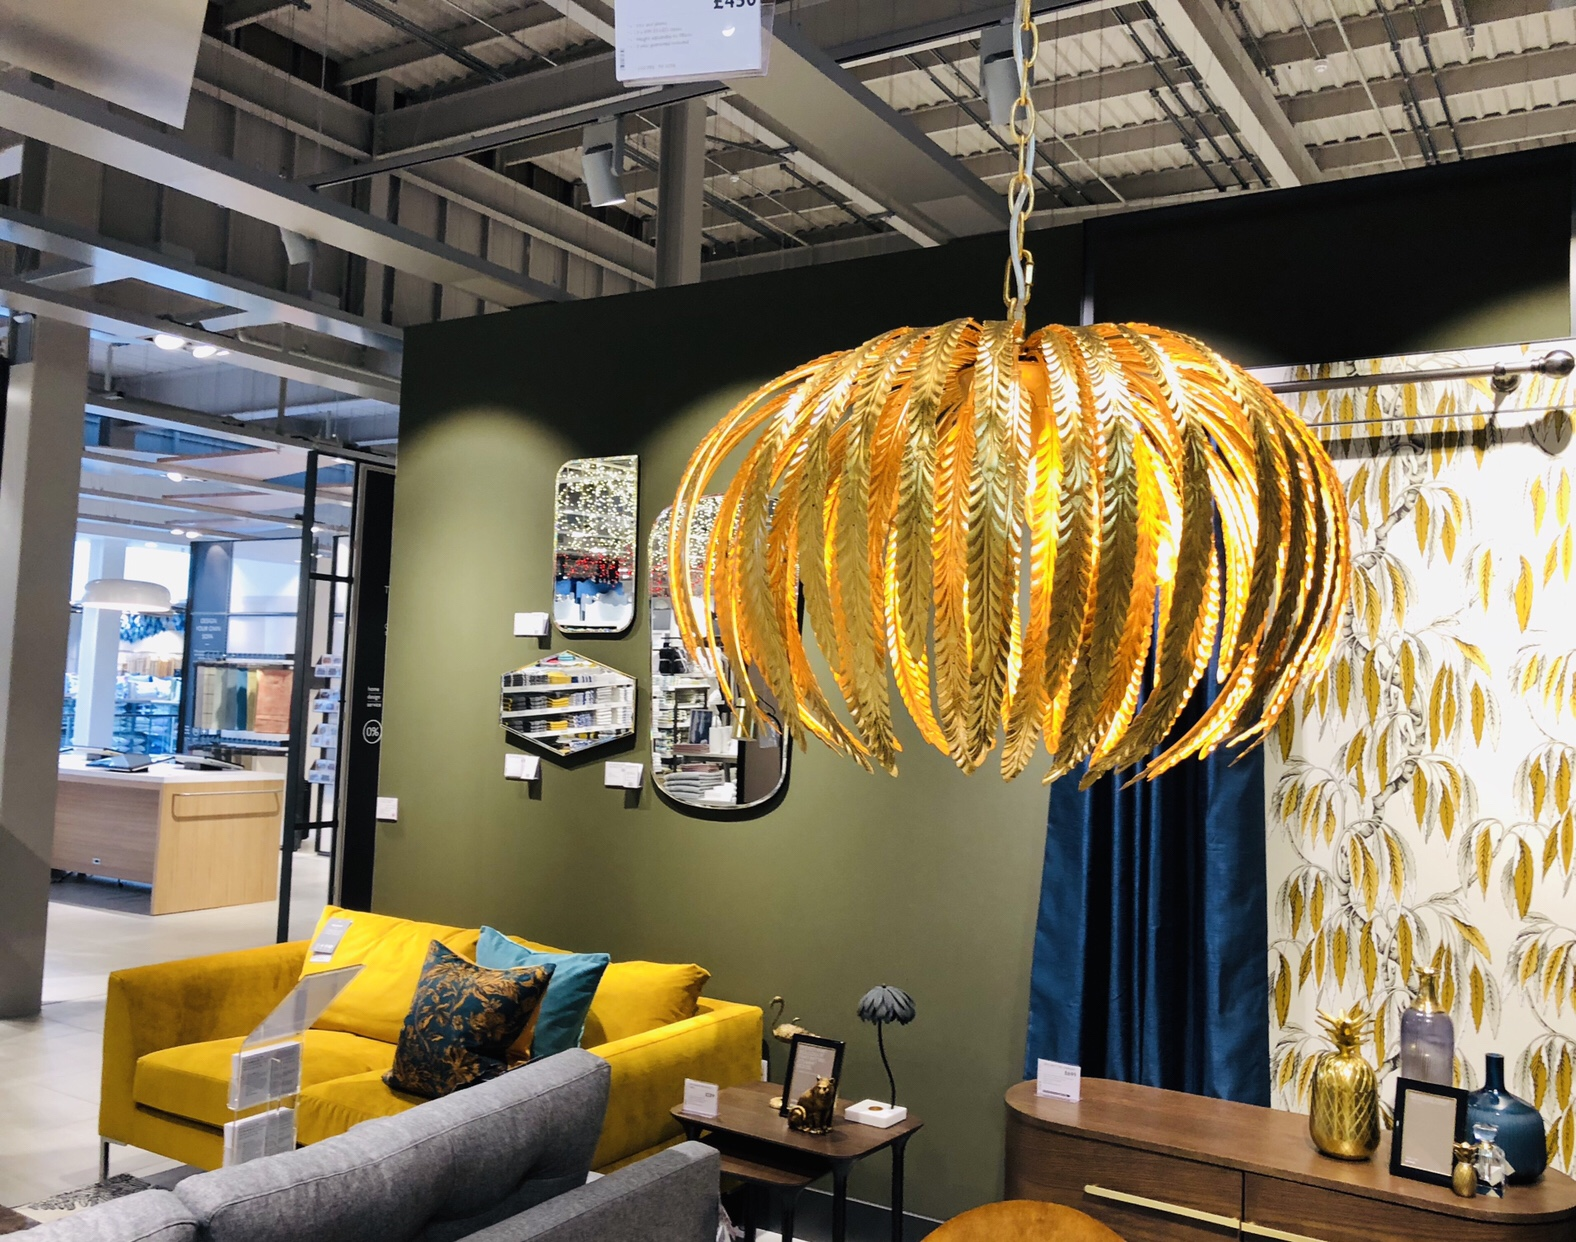 Some beautiful sofa and lounge area styling at John Lewis Cheltenham with mustard and turquoise accents and a stunning gold lampshade.